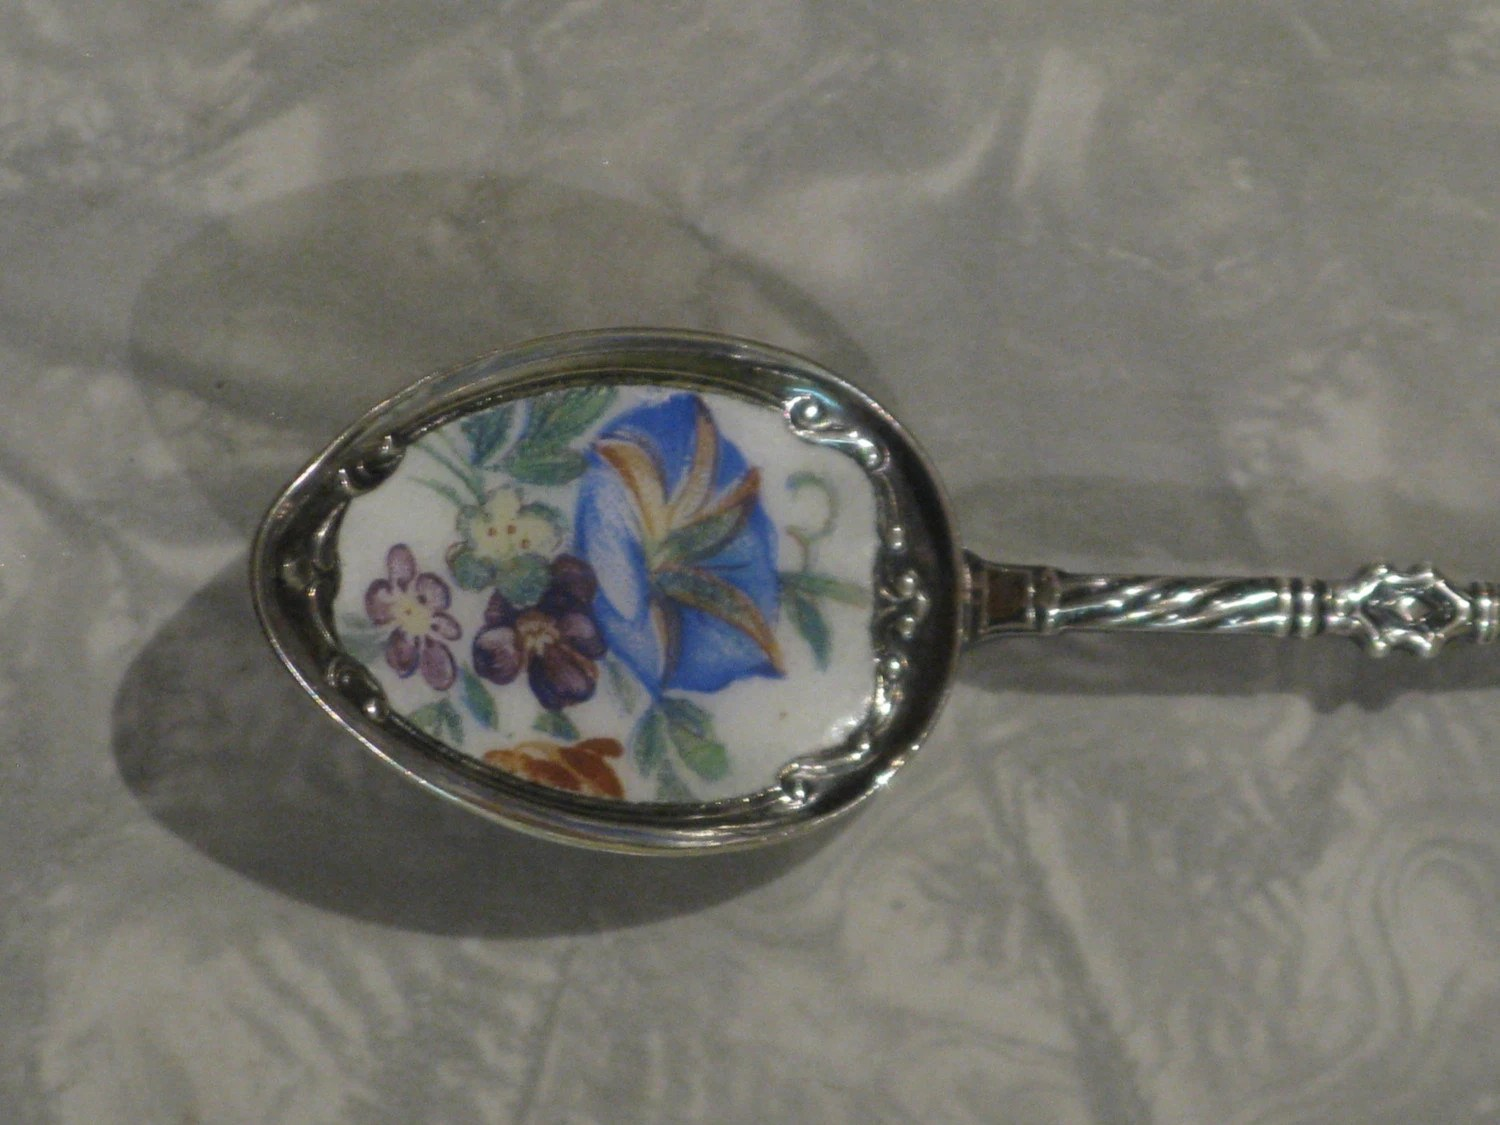 Antique '90' Silverplate Stag Hoof Enameled Decorative Spoon with Flower Motif Morning Glory